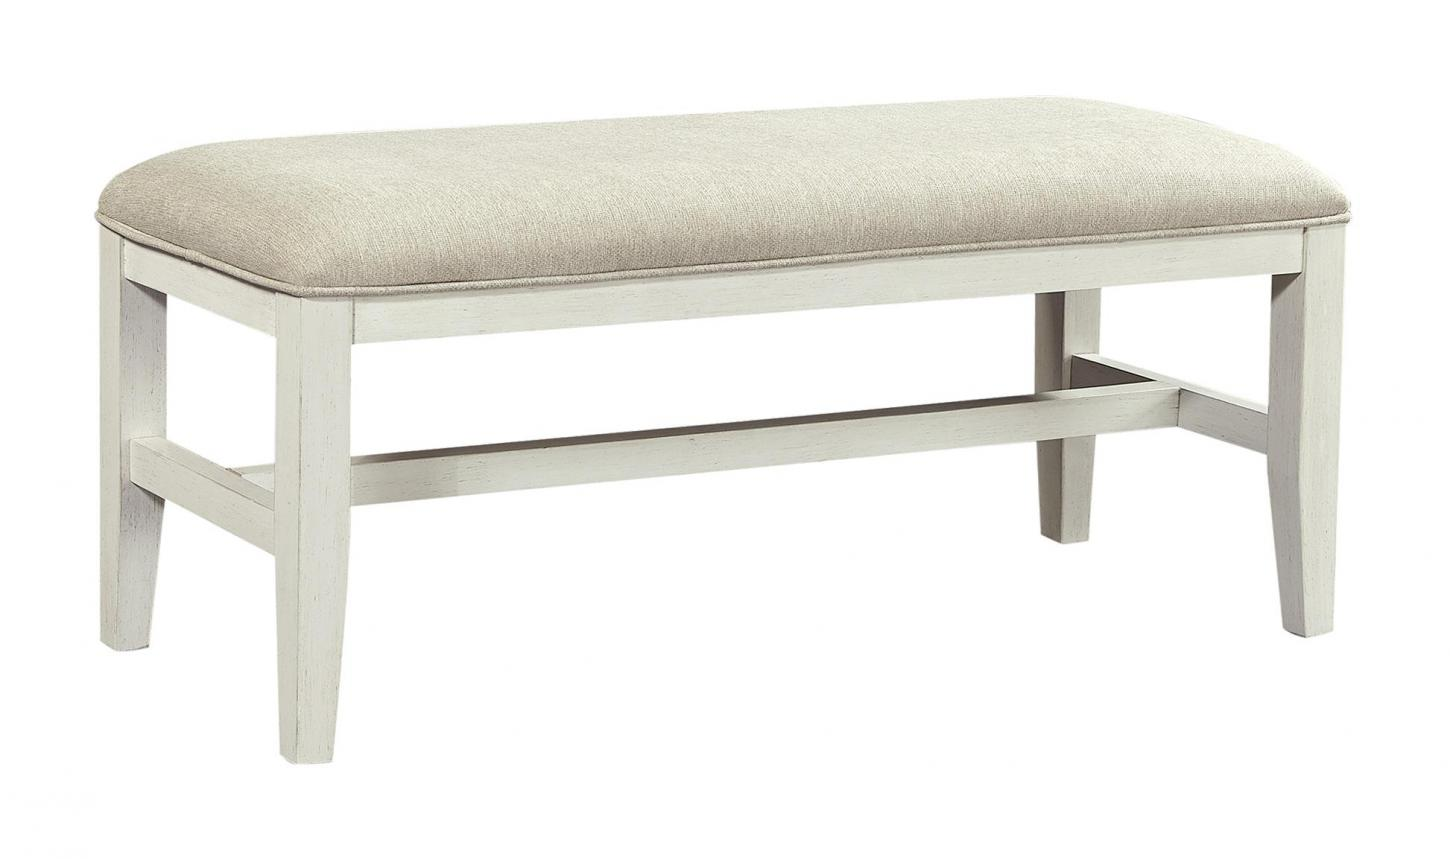 Charlotte Bench in the White finish